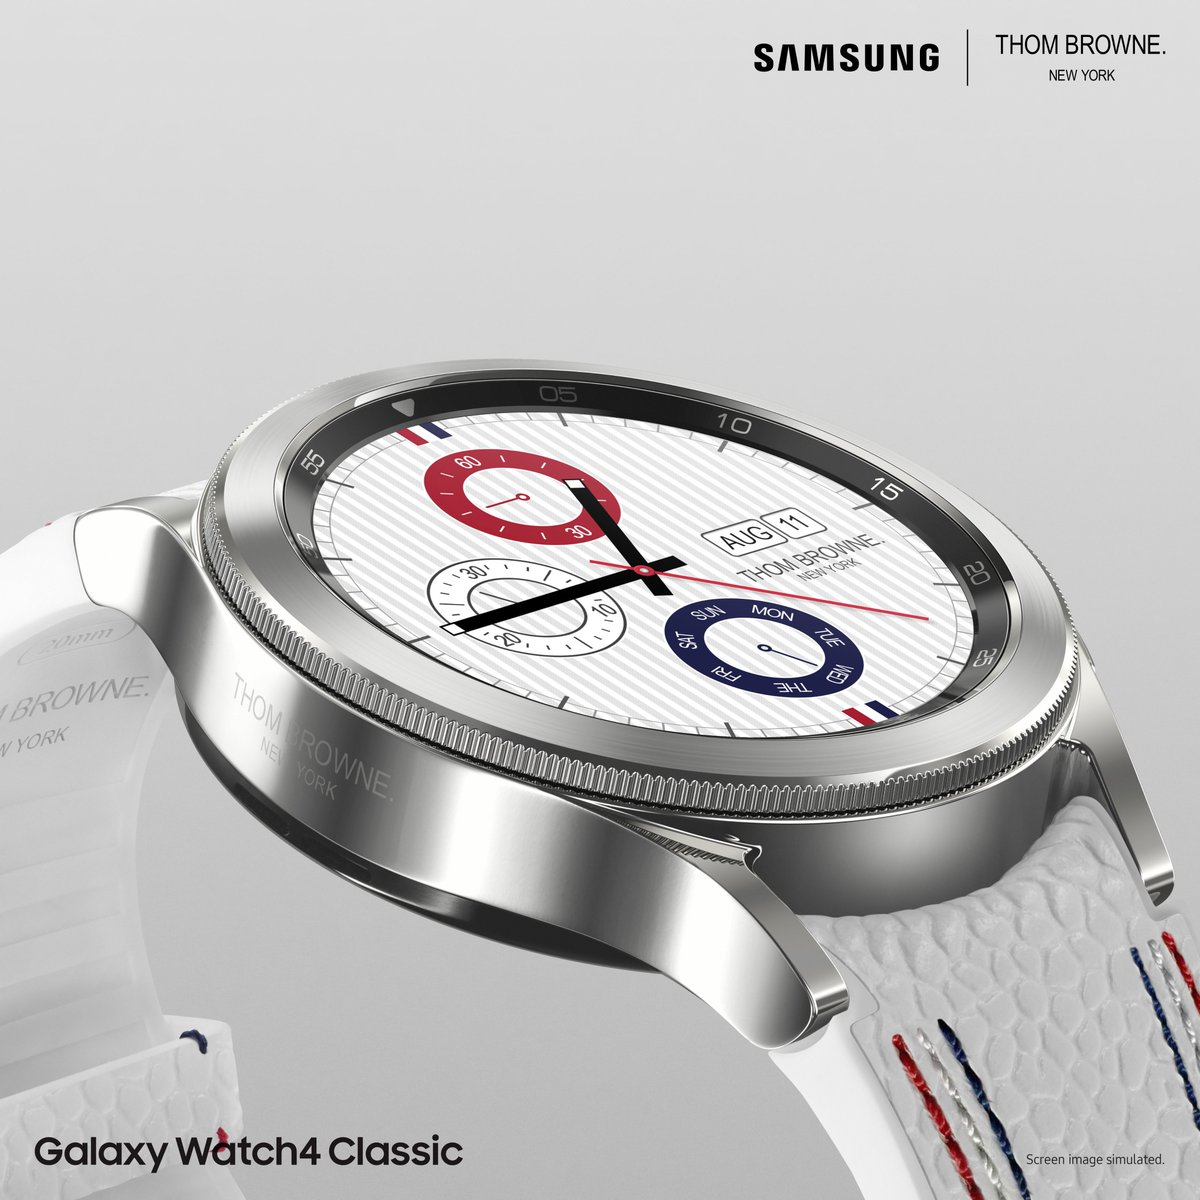 The perfect combination of timeless style and digital versatility. A new collection created with rhodium plating, #GalaxyWatch4Classic #ThomBrowne Edition.  Available in select markets from September 29th. Learn more: https://t.co/IvNZc24Ya9  #SamsungThomBrowne https://t.co/vOC87wWuT0